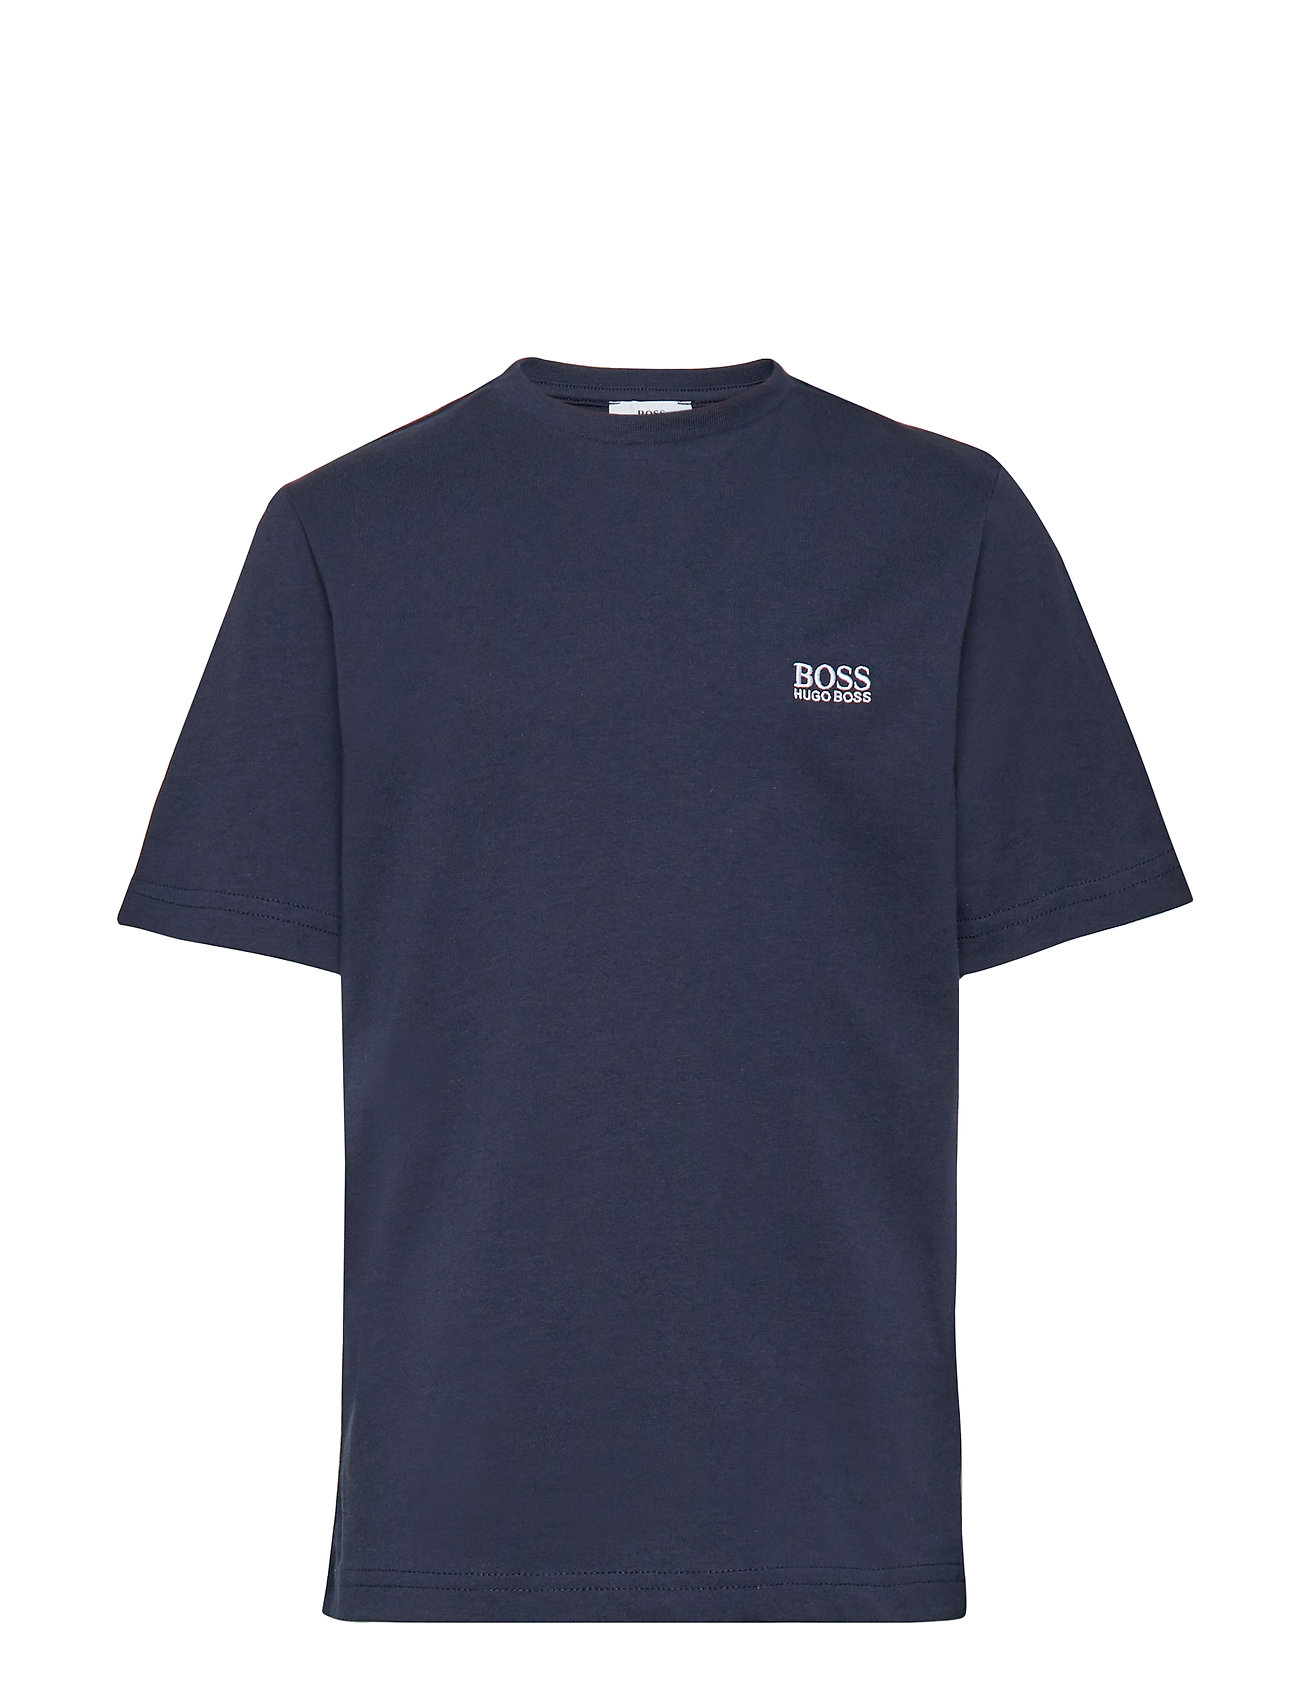 BOSS SHORT SLEEVES TEE-SHIRT - NAVY